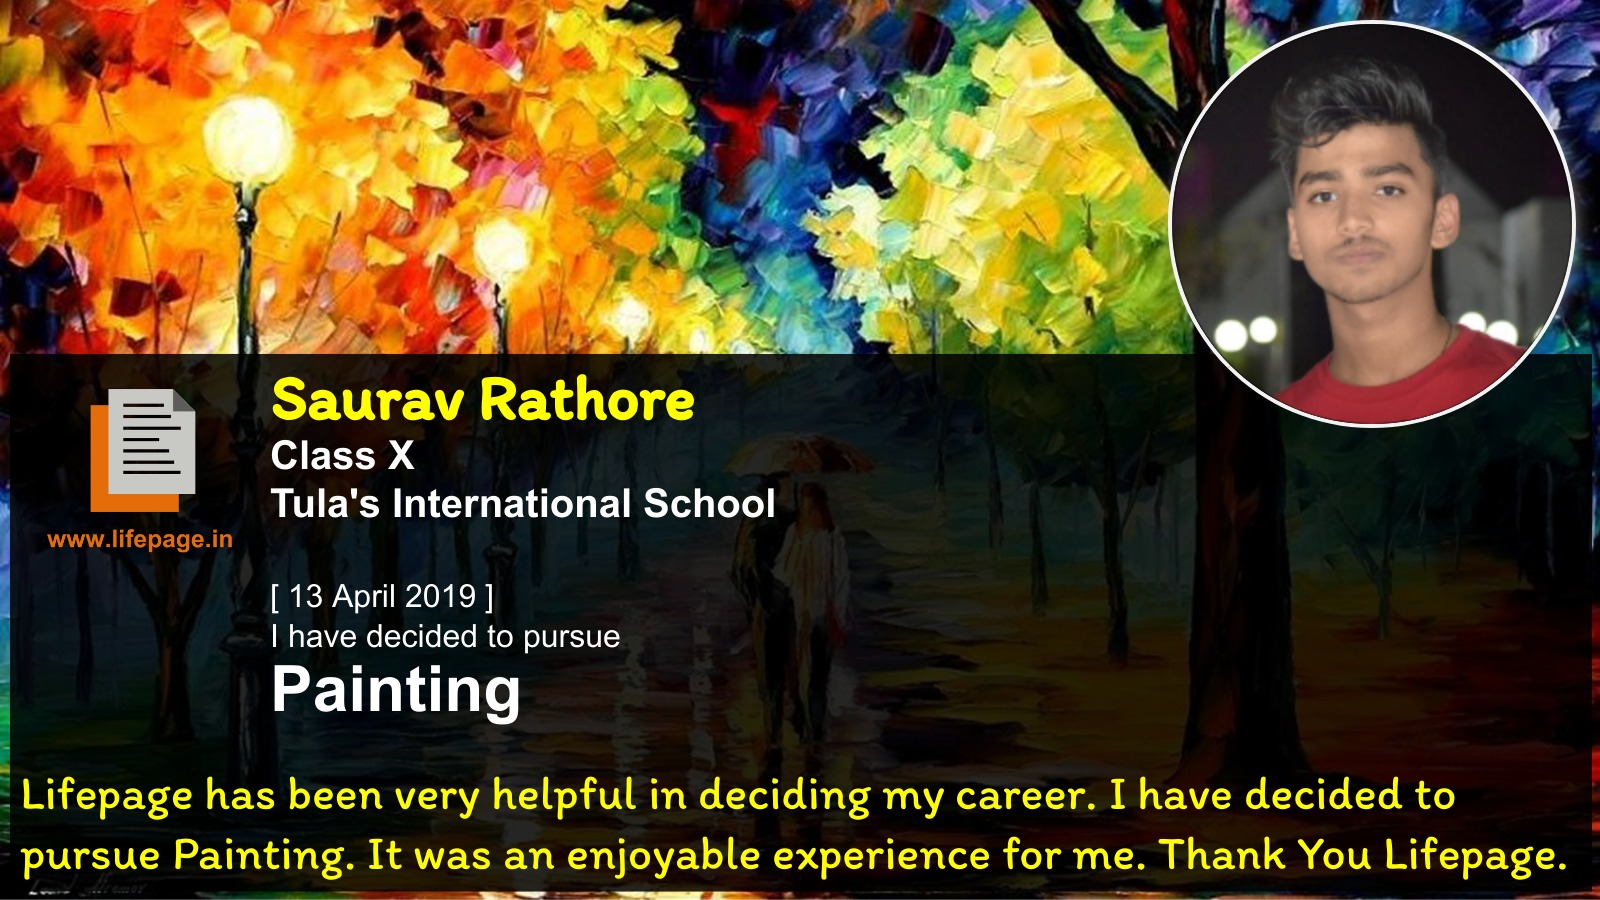 Lifepage has been very helpful in deciding my career. I have decided to pursue Painting. It was an enjoyable experience for me. Thank You Lifepage....